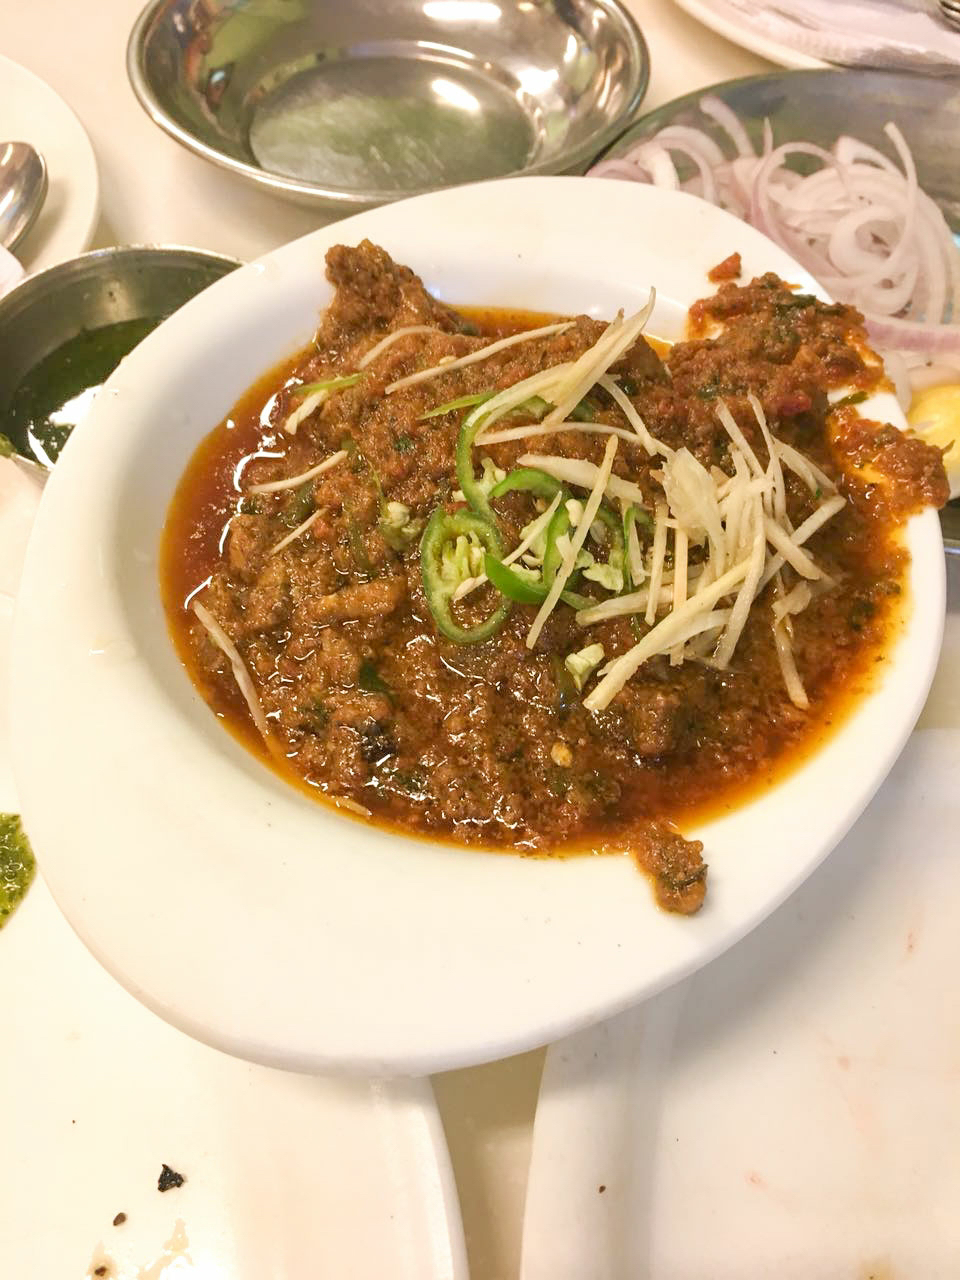 Karims restaurant, Delhi, the famed Mutton Korma